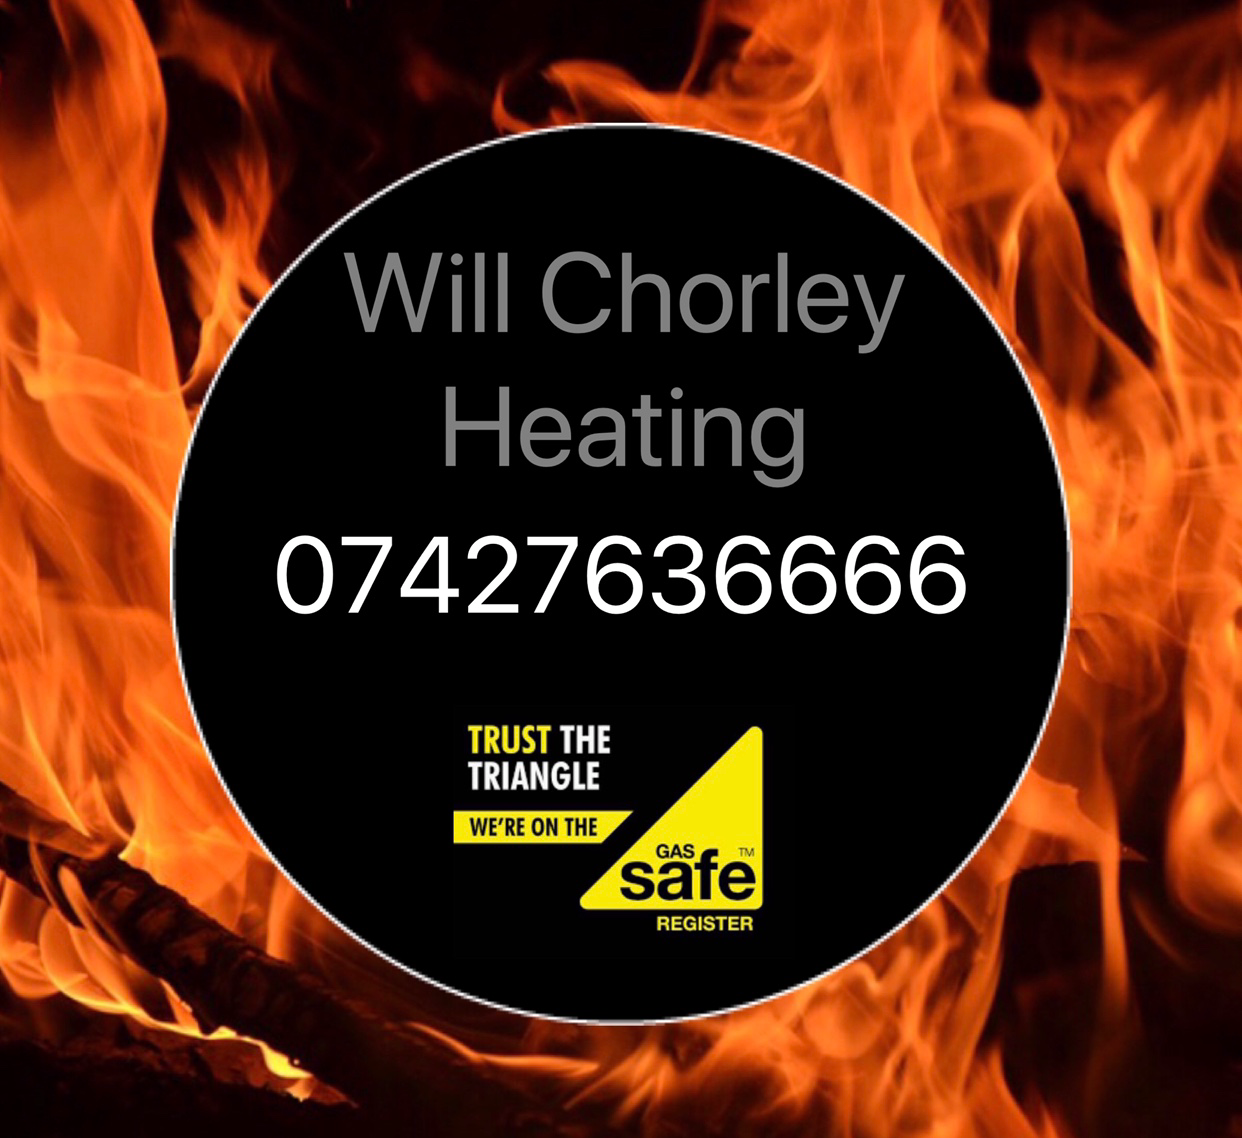 Will Chorley Heating